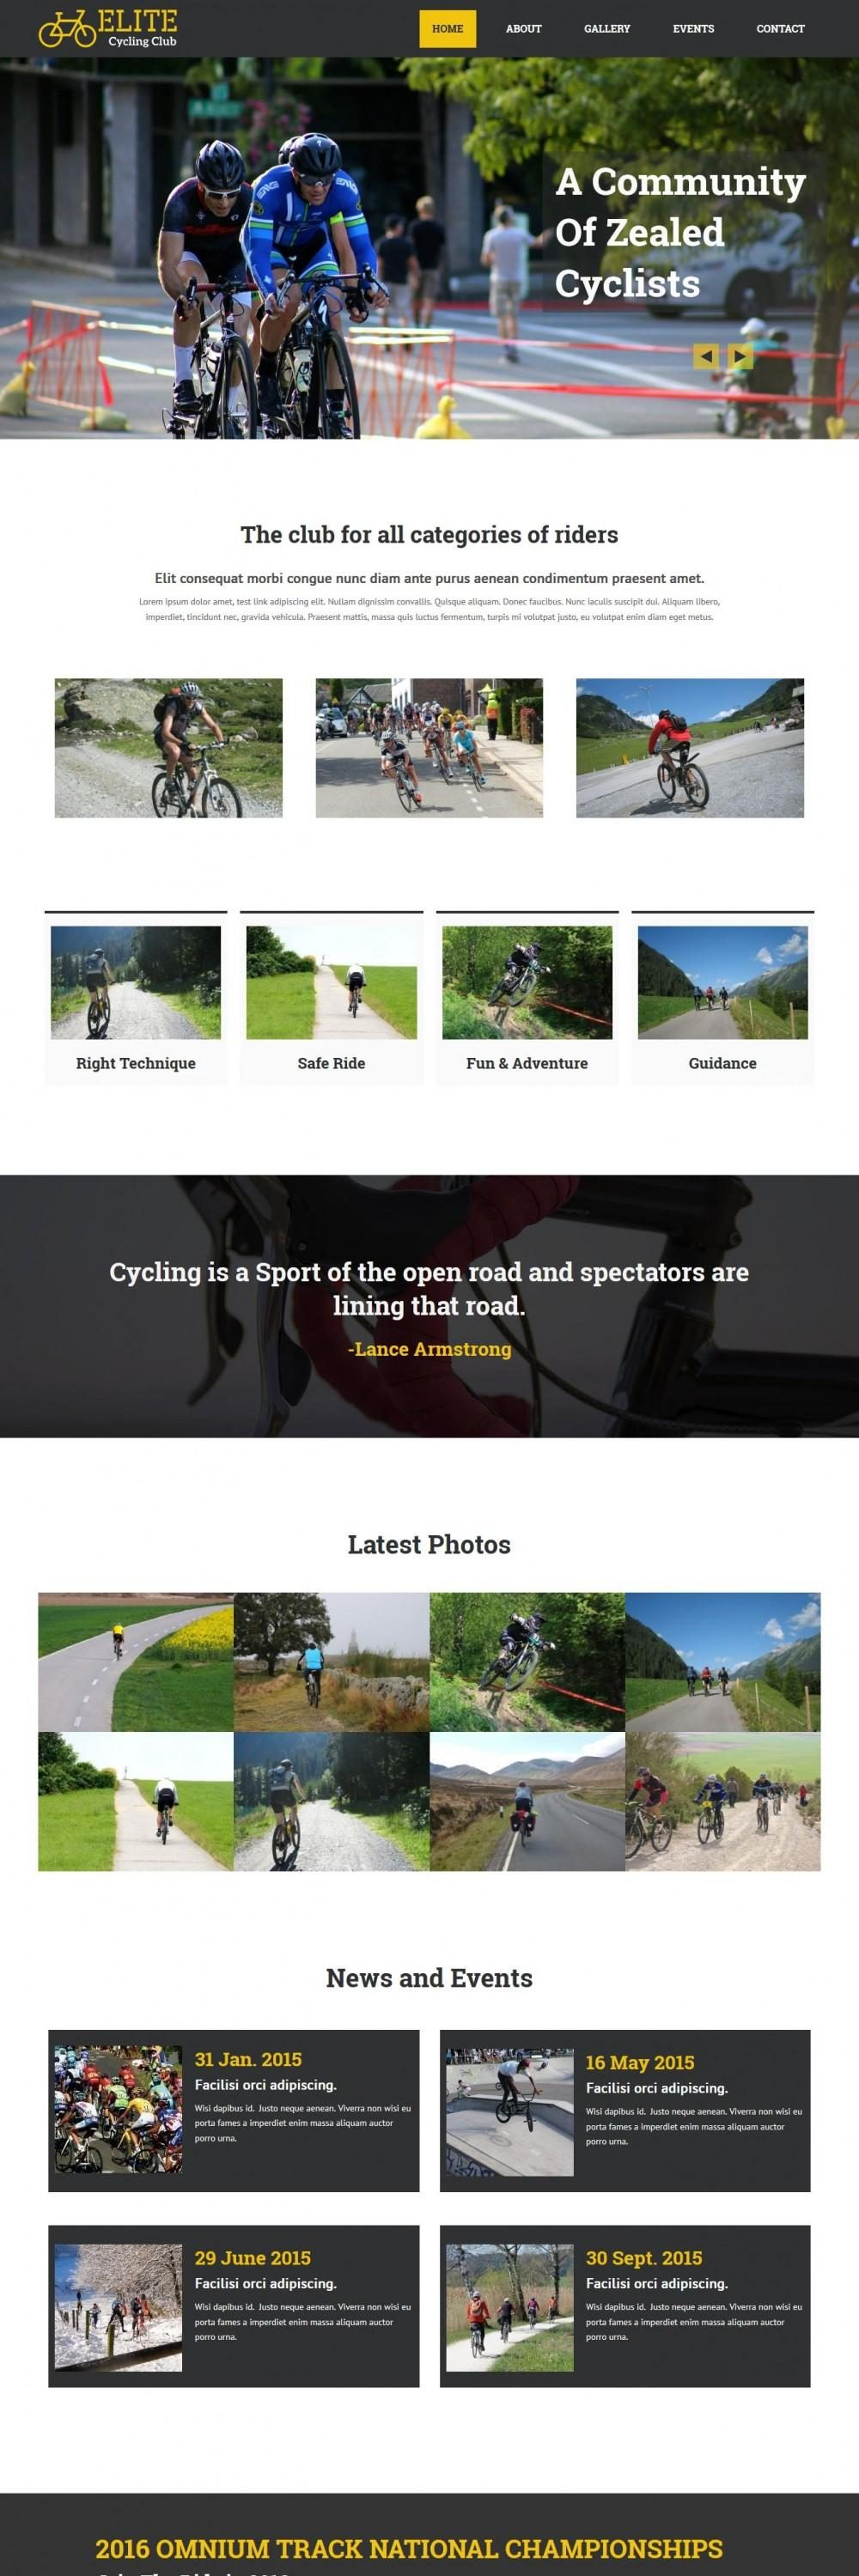 Elite Cycling Club - Cycling Club Joomla Template